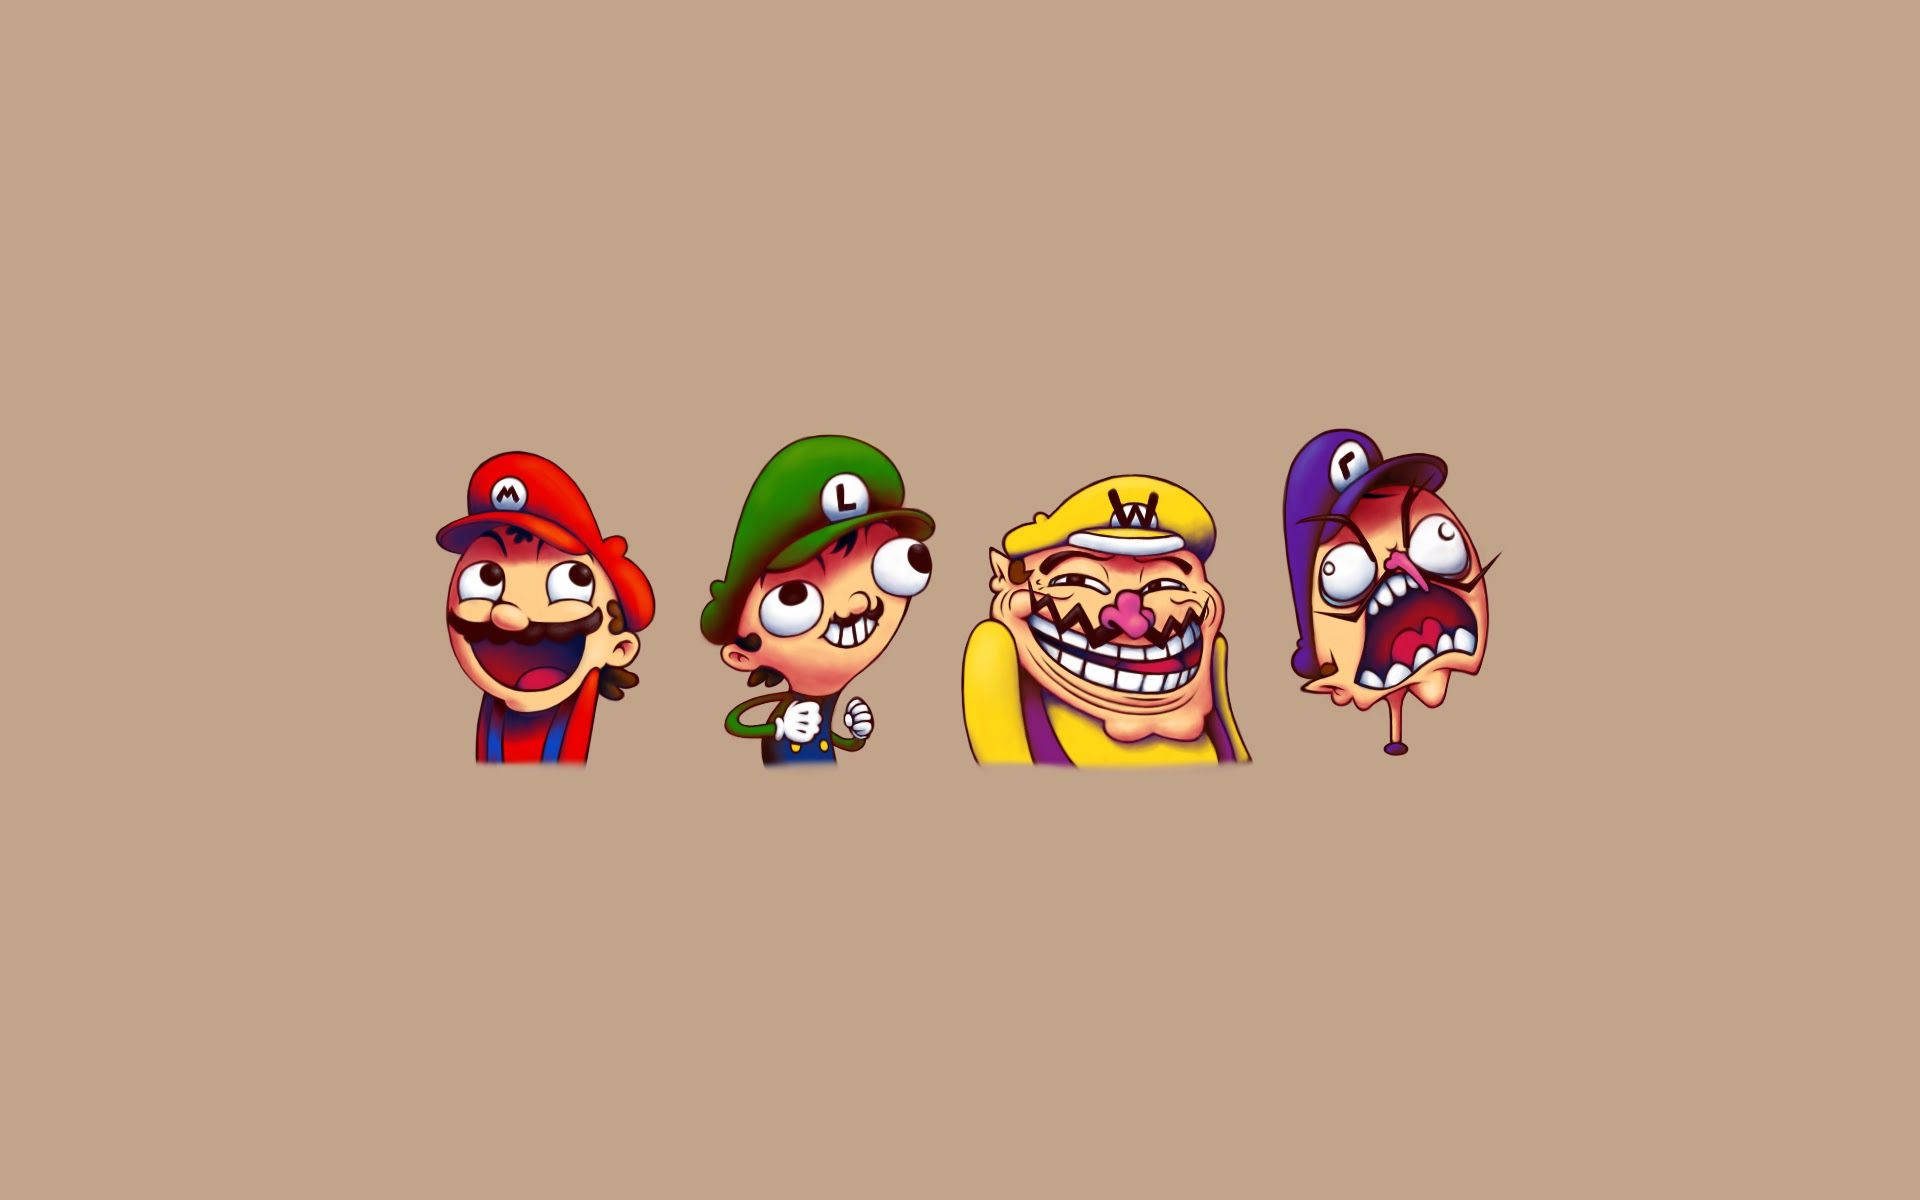 Mario brothers troll face hd wallpapermario brothers humor funny mario brothers troll face hd wallpapermario brothers humor voltagebd Gallery